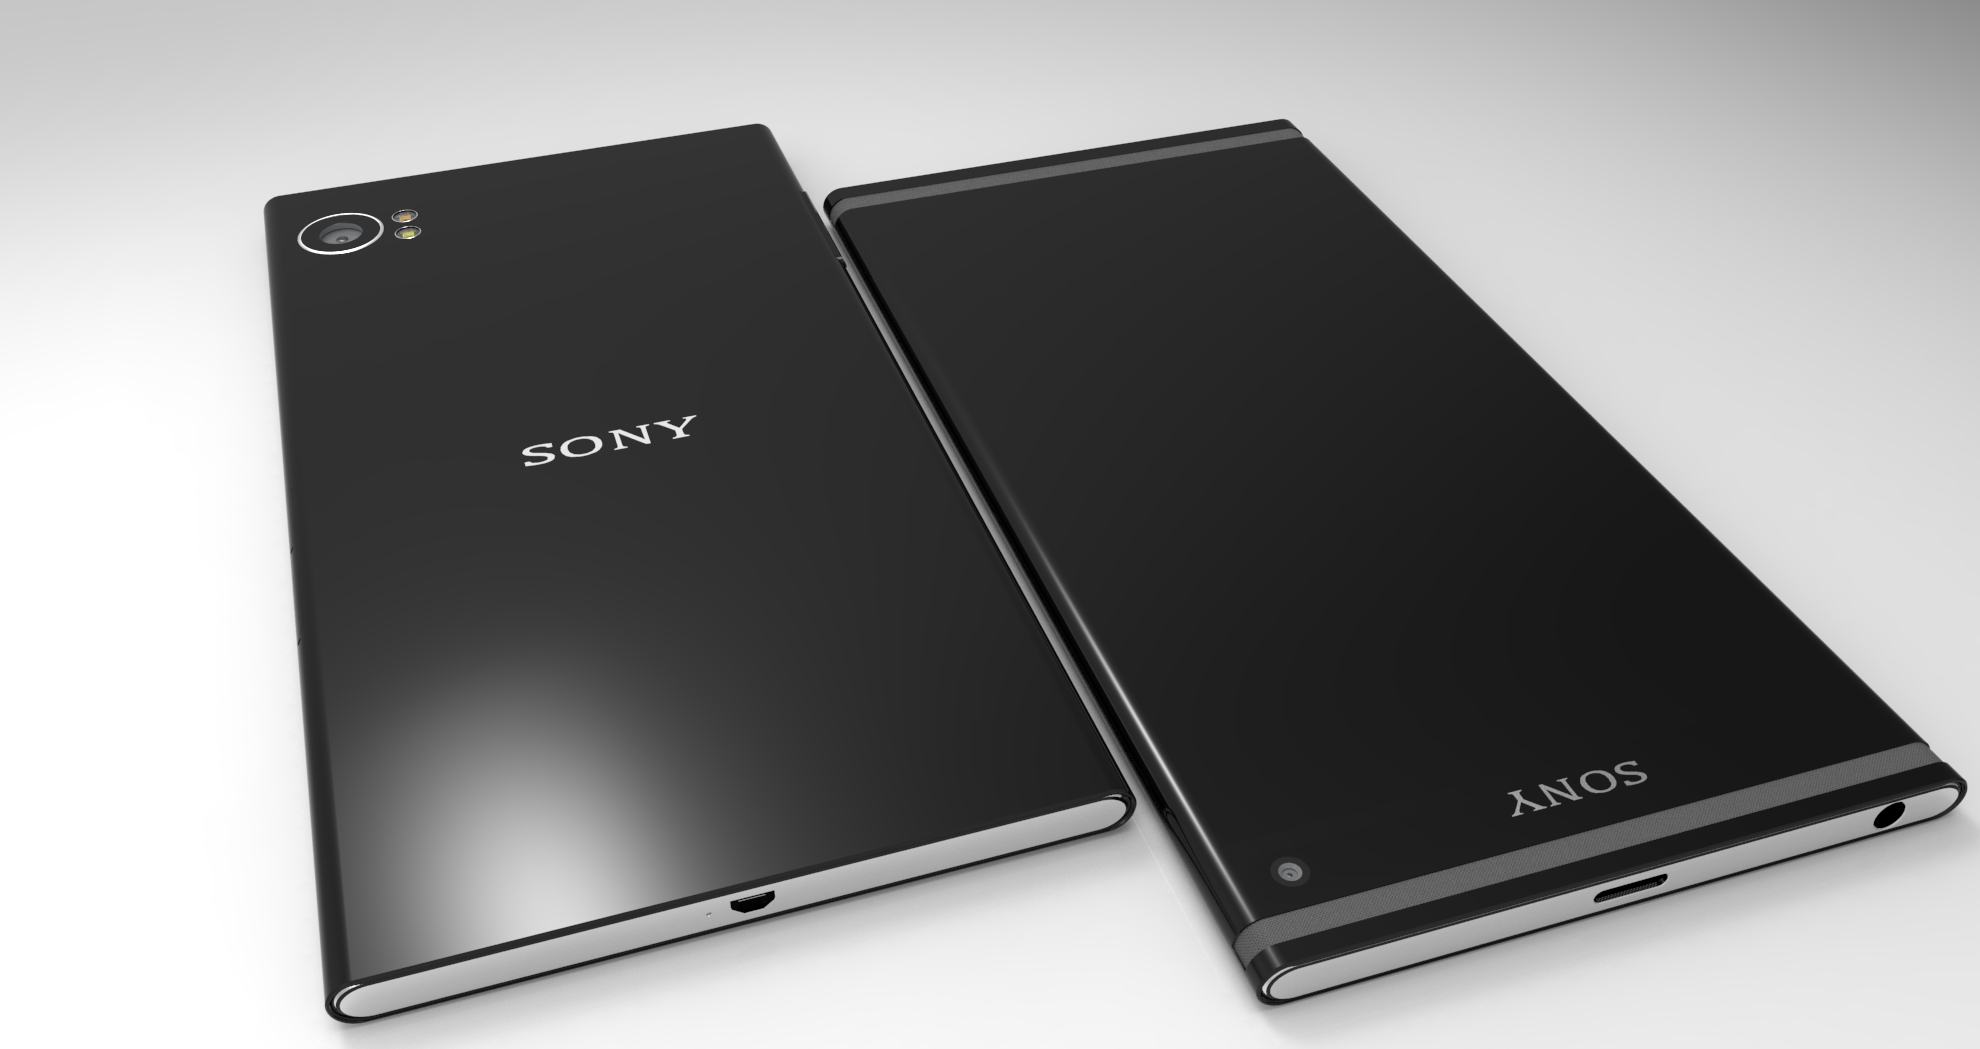 Sony Xperia Z4 Features Technical Specifications And Price